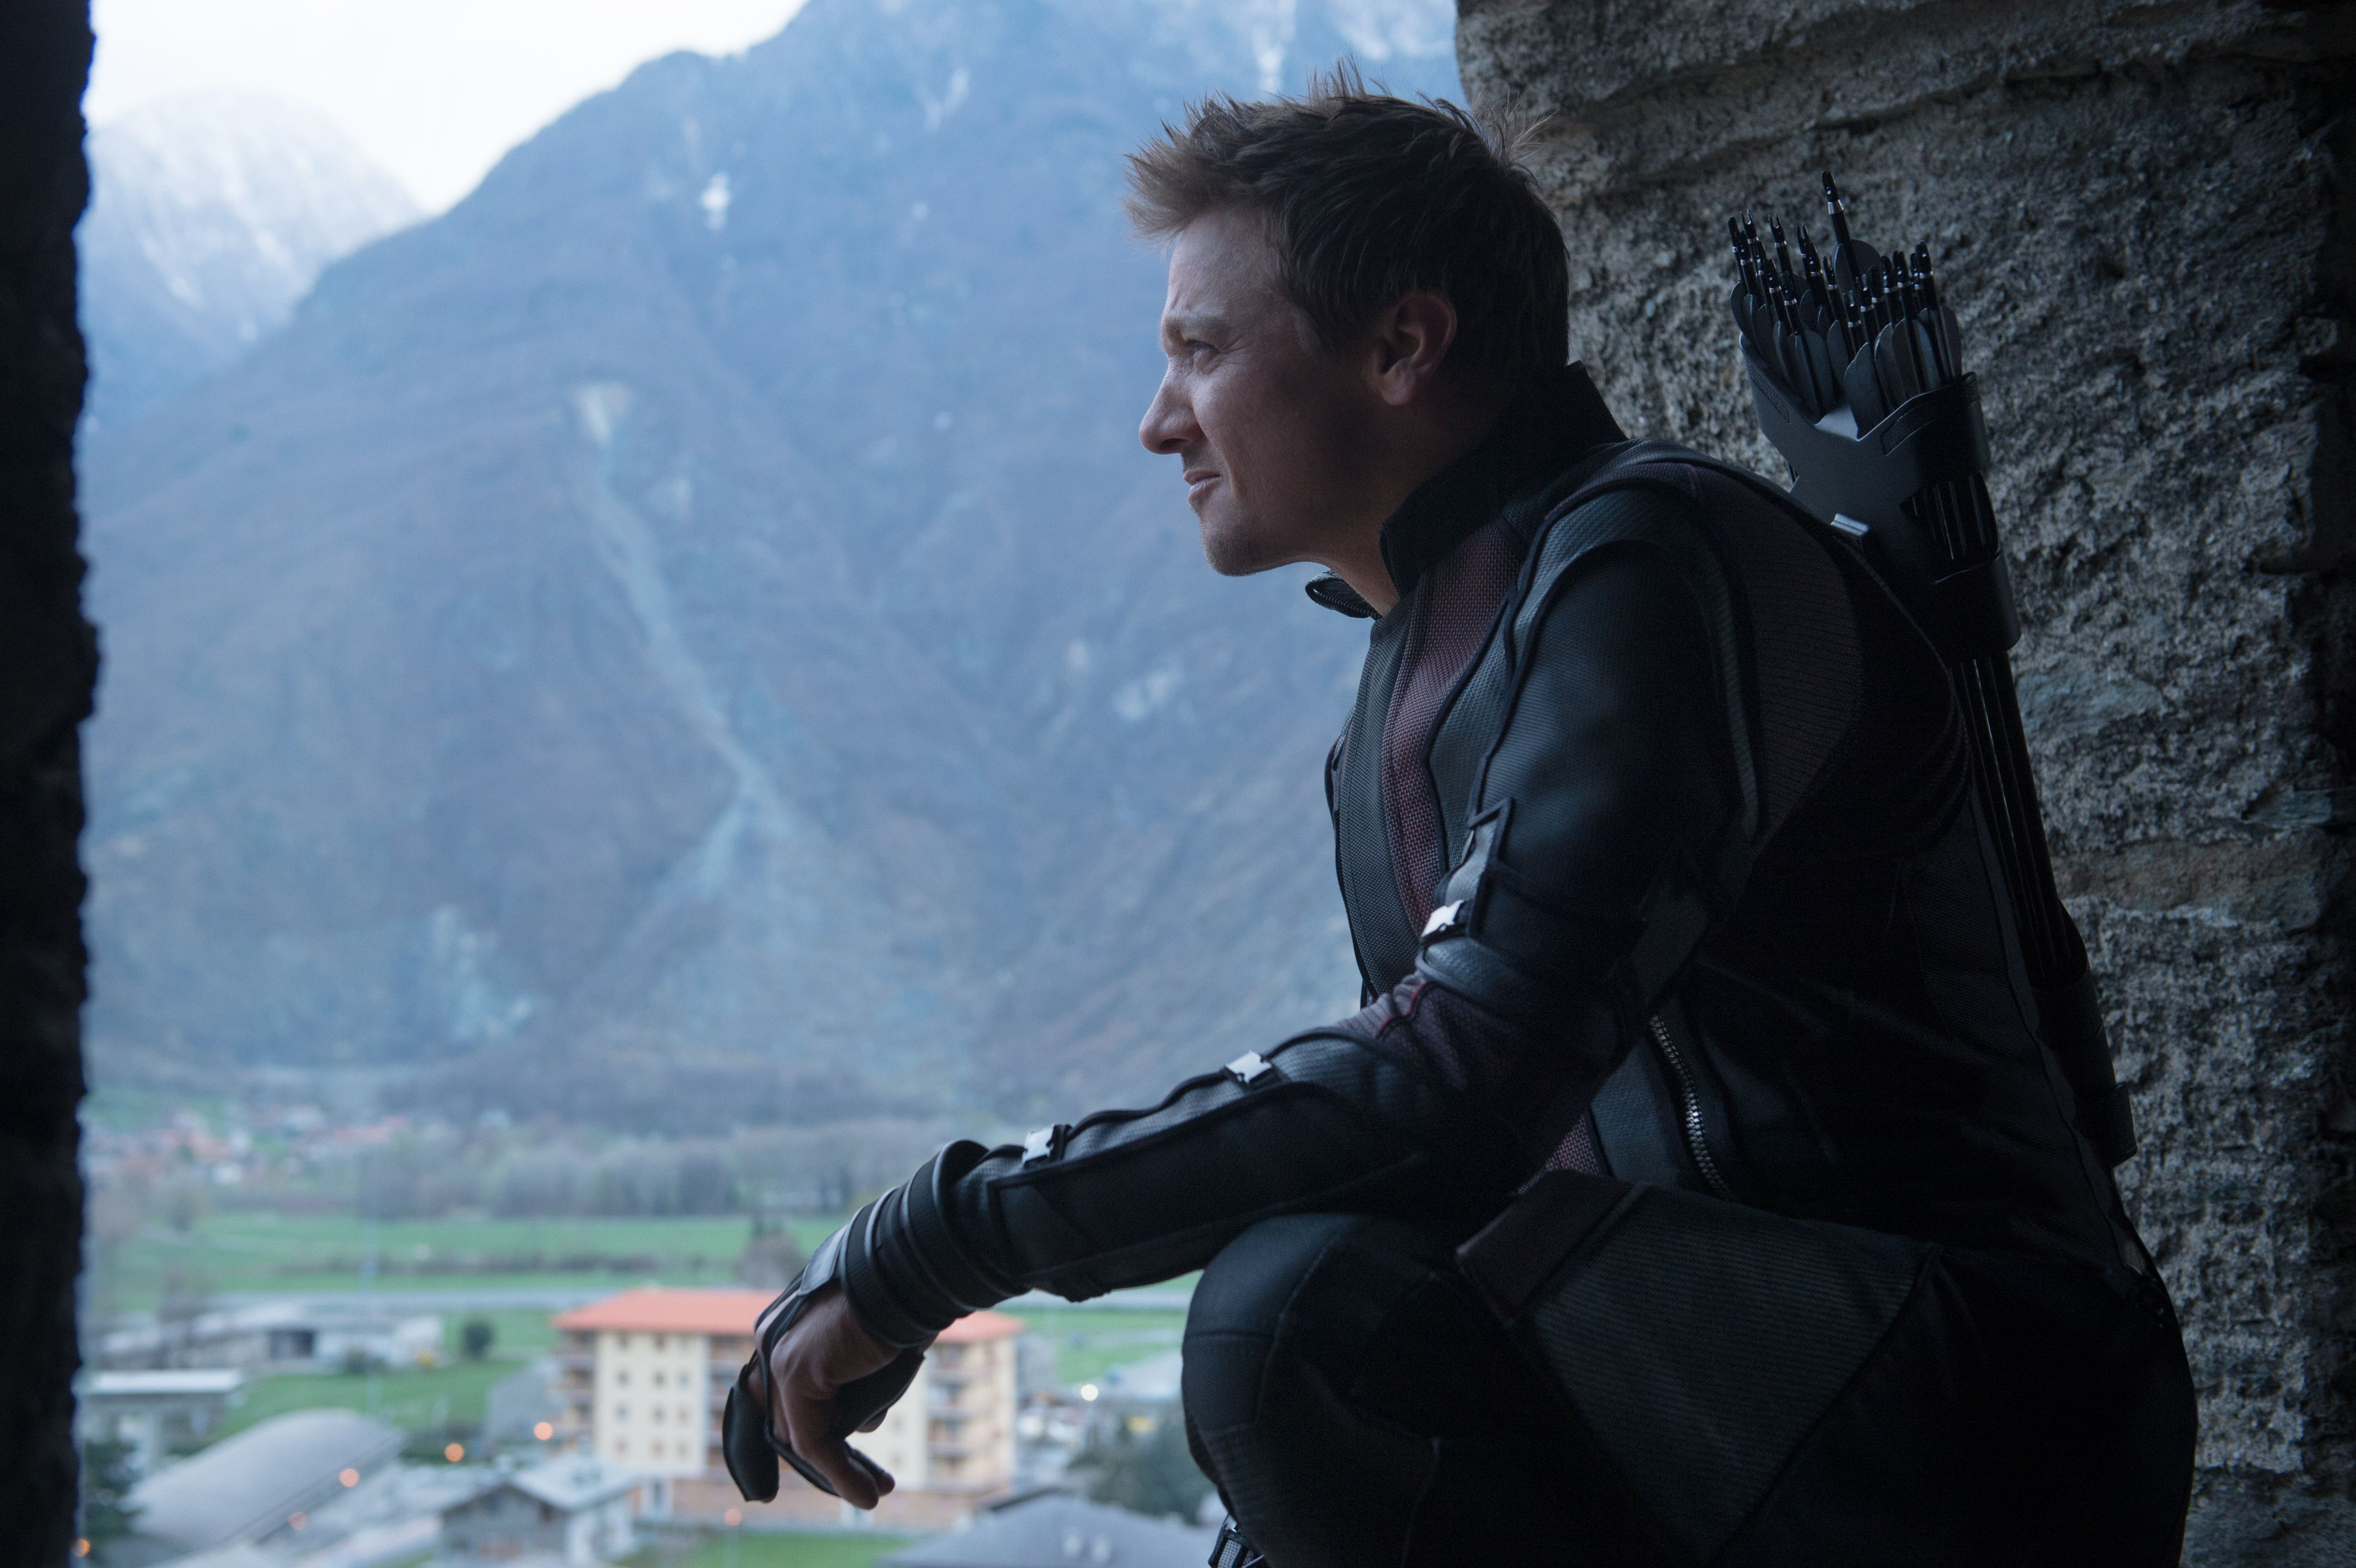 New Stills Released From AVENGERS: AGE OF ULTRON